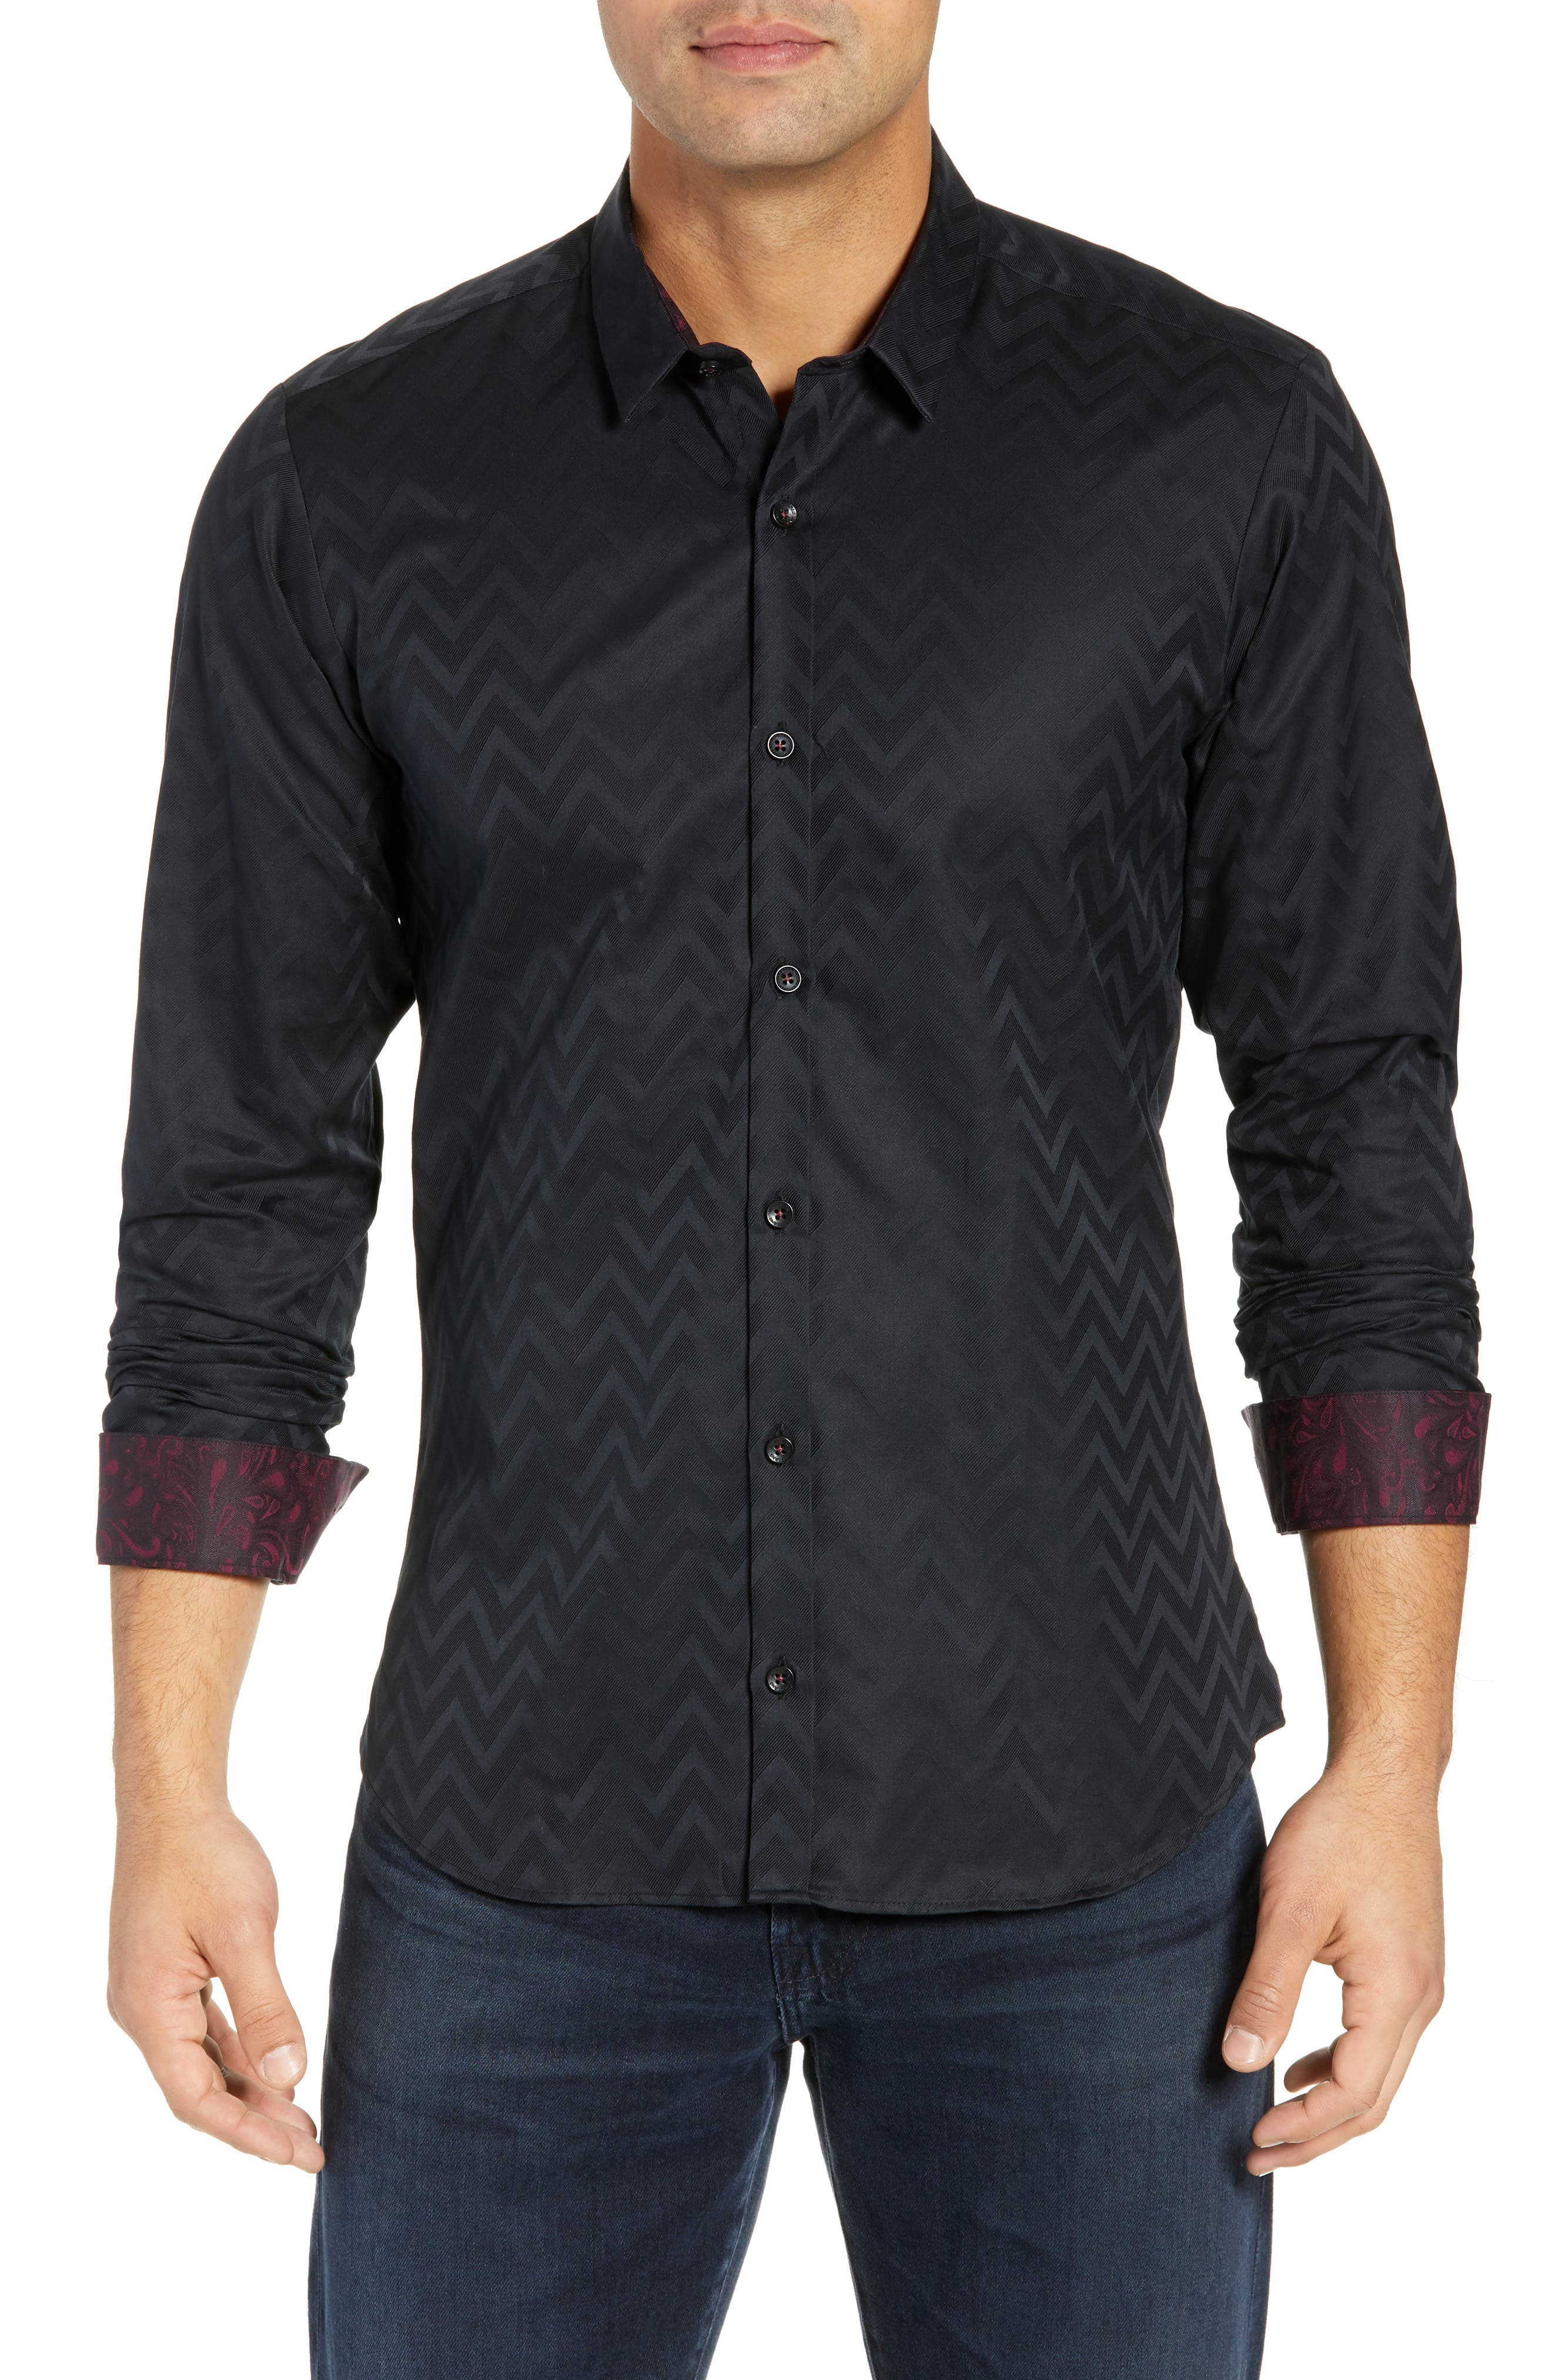 JARED LANG Trim Fit Chevron Sport Shirt in Black